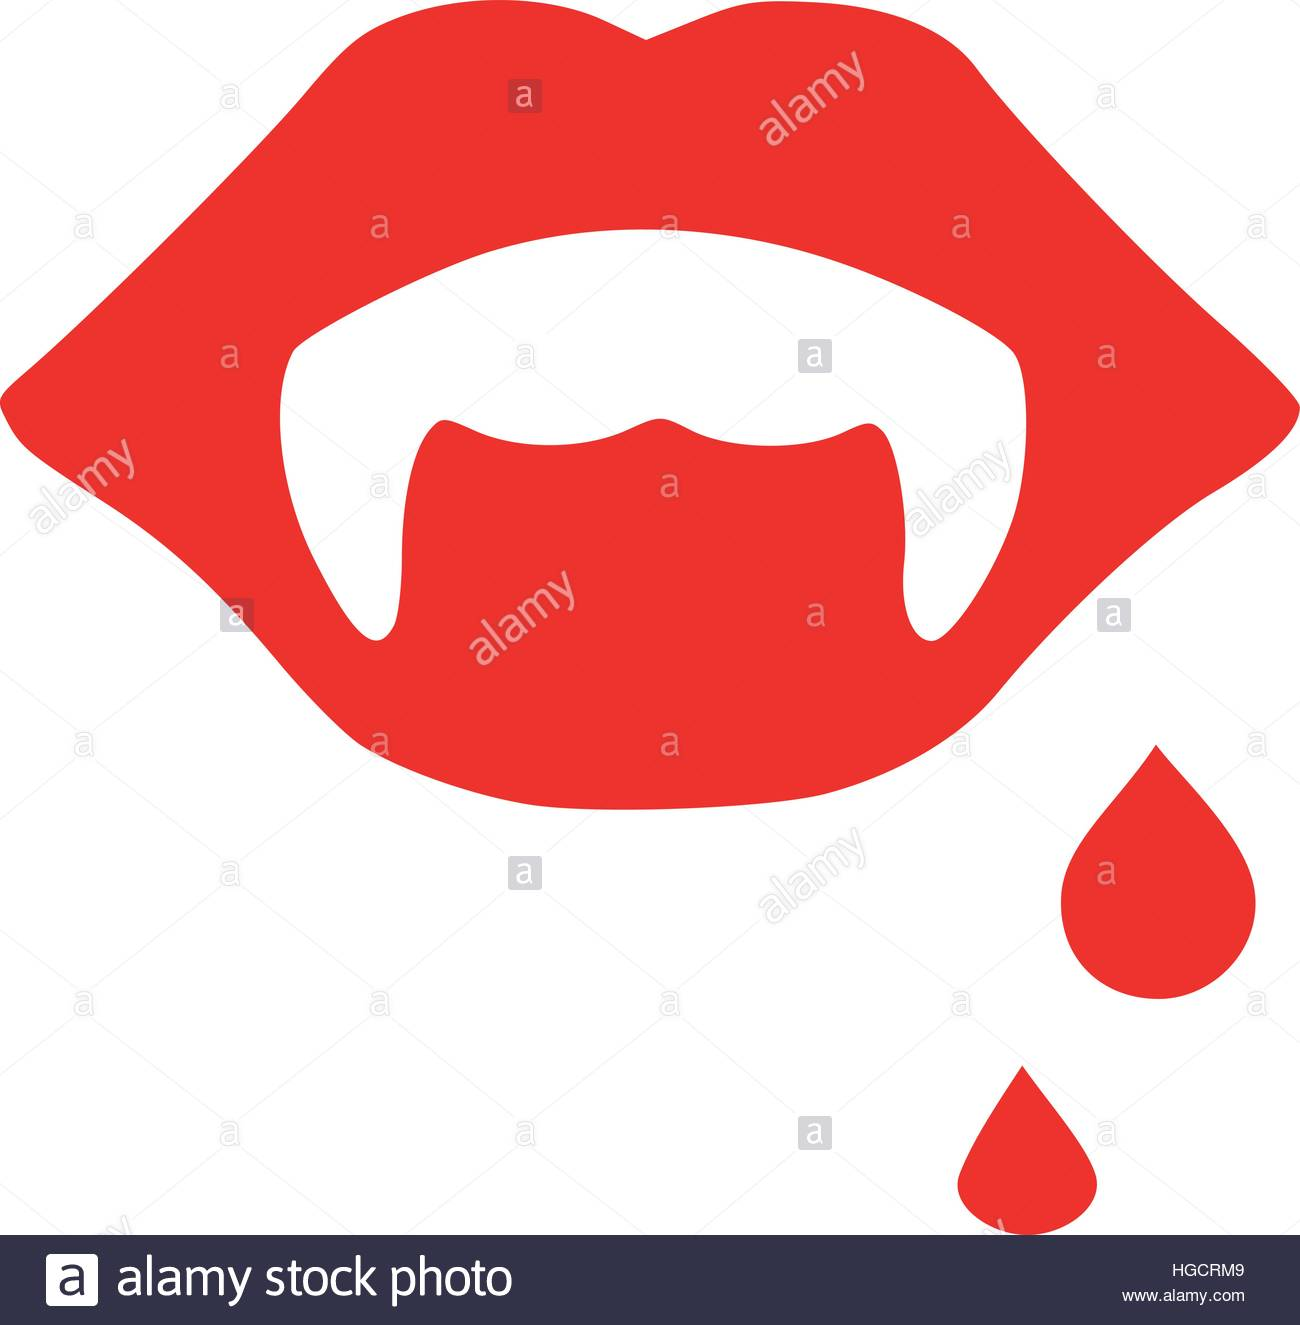 Vampire Teeth Clipart At Getdrawings Com Free For Personal Use